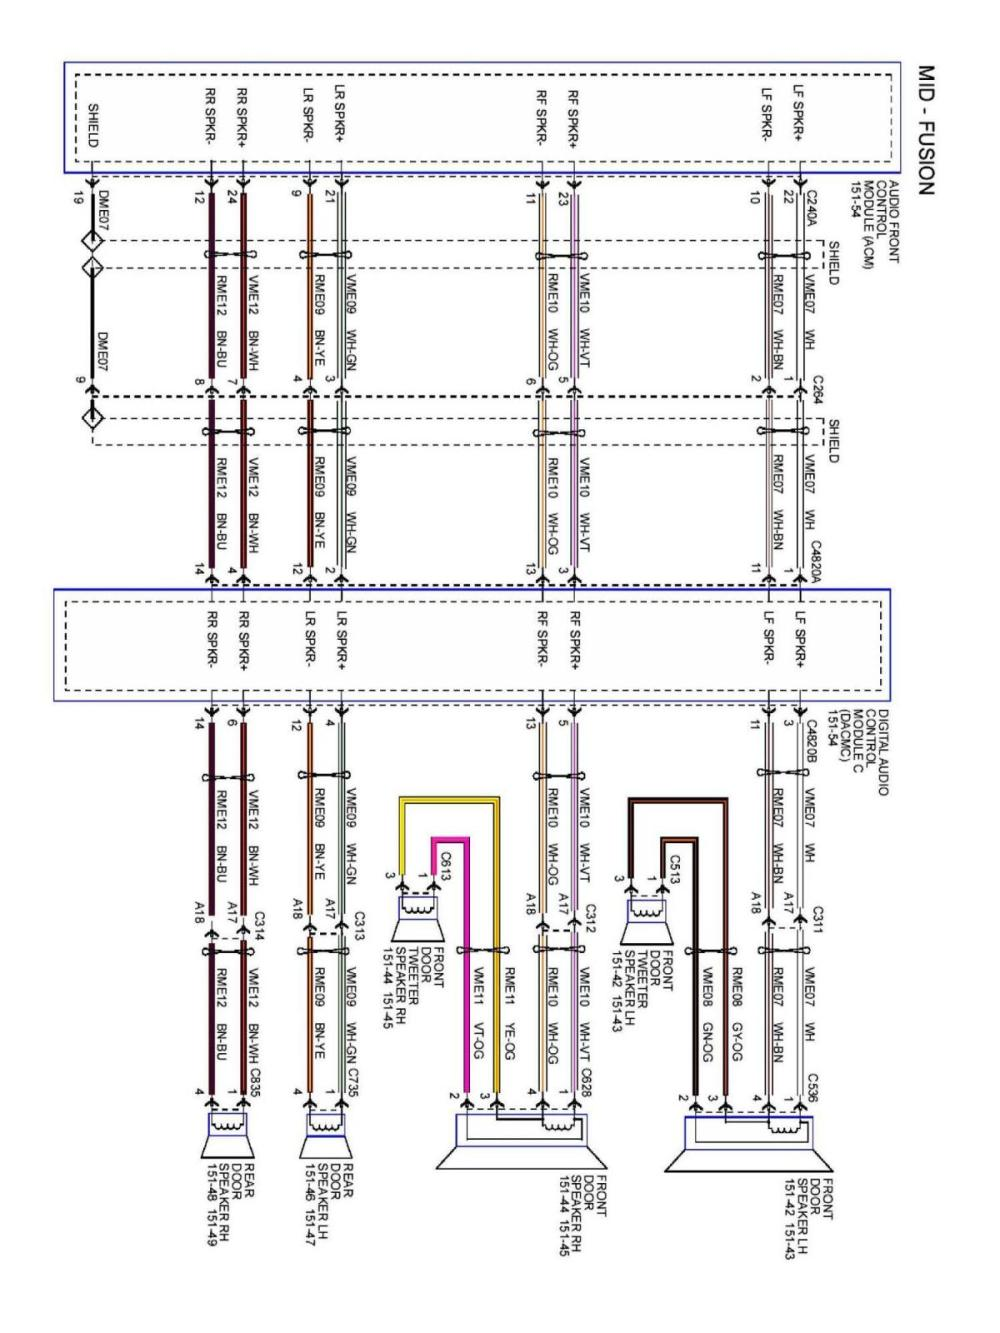 medium resolution of 2013 ford fusion wiring diagram wiring diagram sheet 2012 ford fusion wiring diagram 2013 fusion wiring diagram